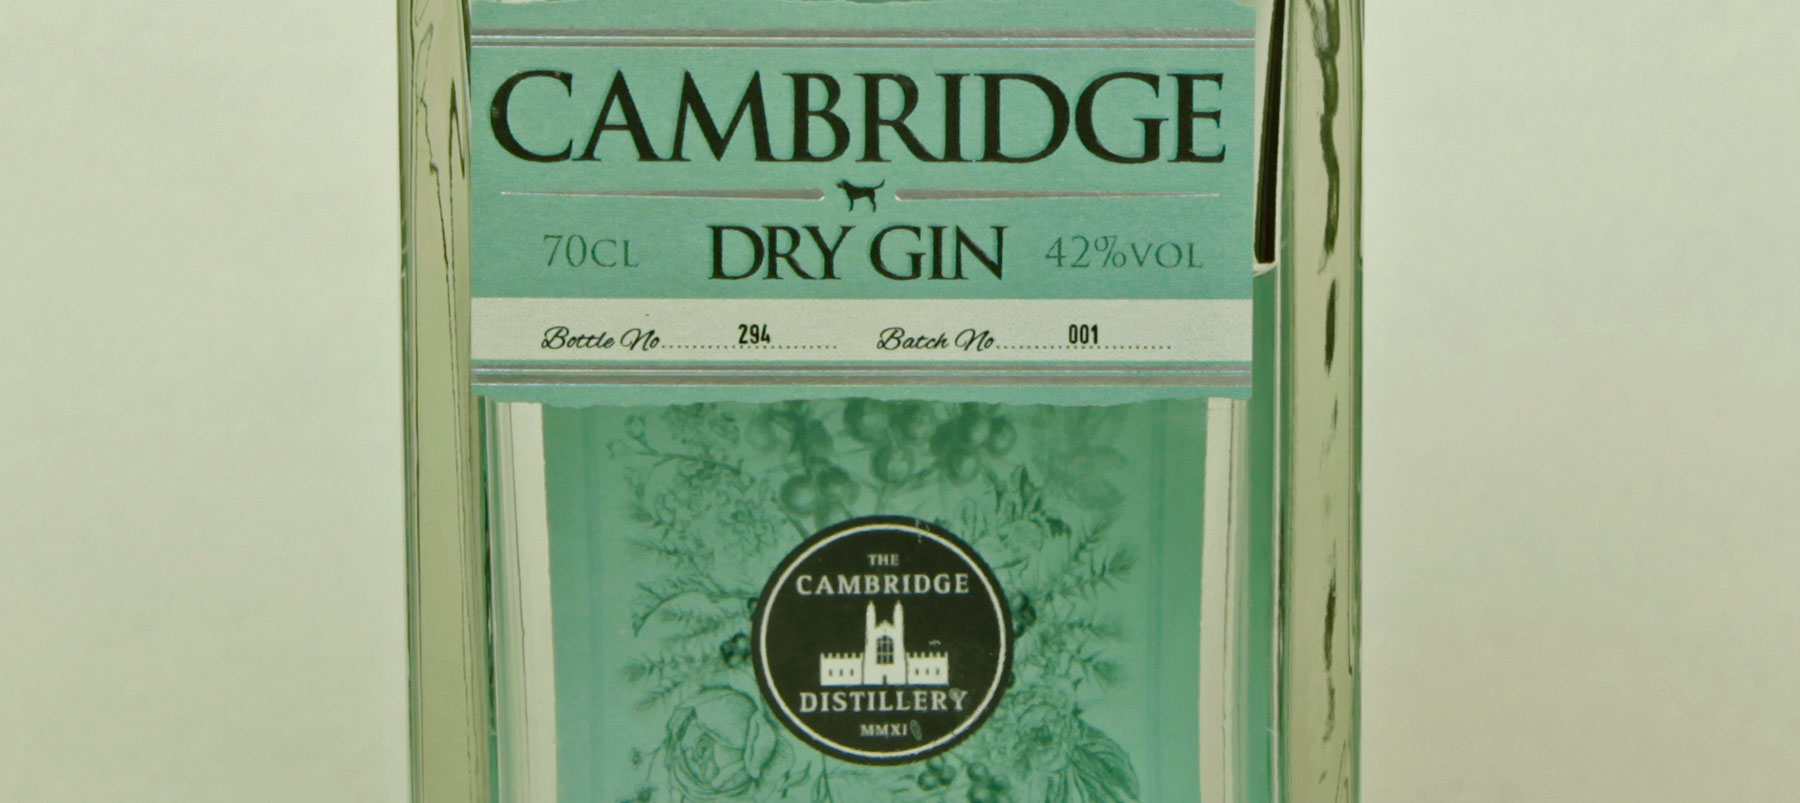 Gin Review: Cambridge Dry gin 42% ABV